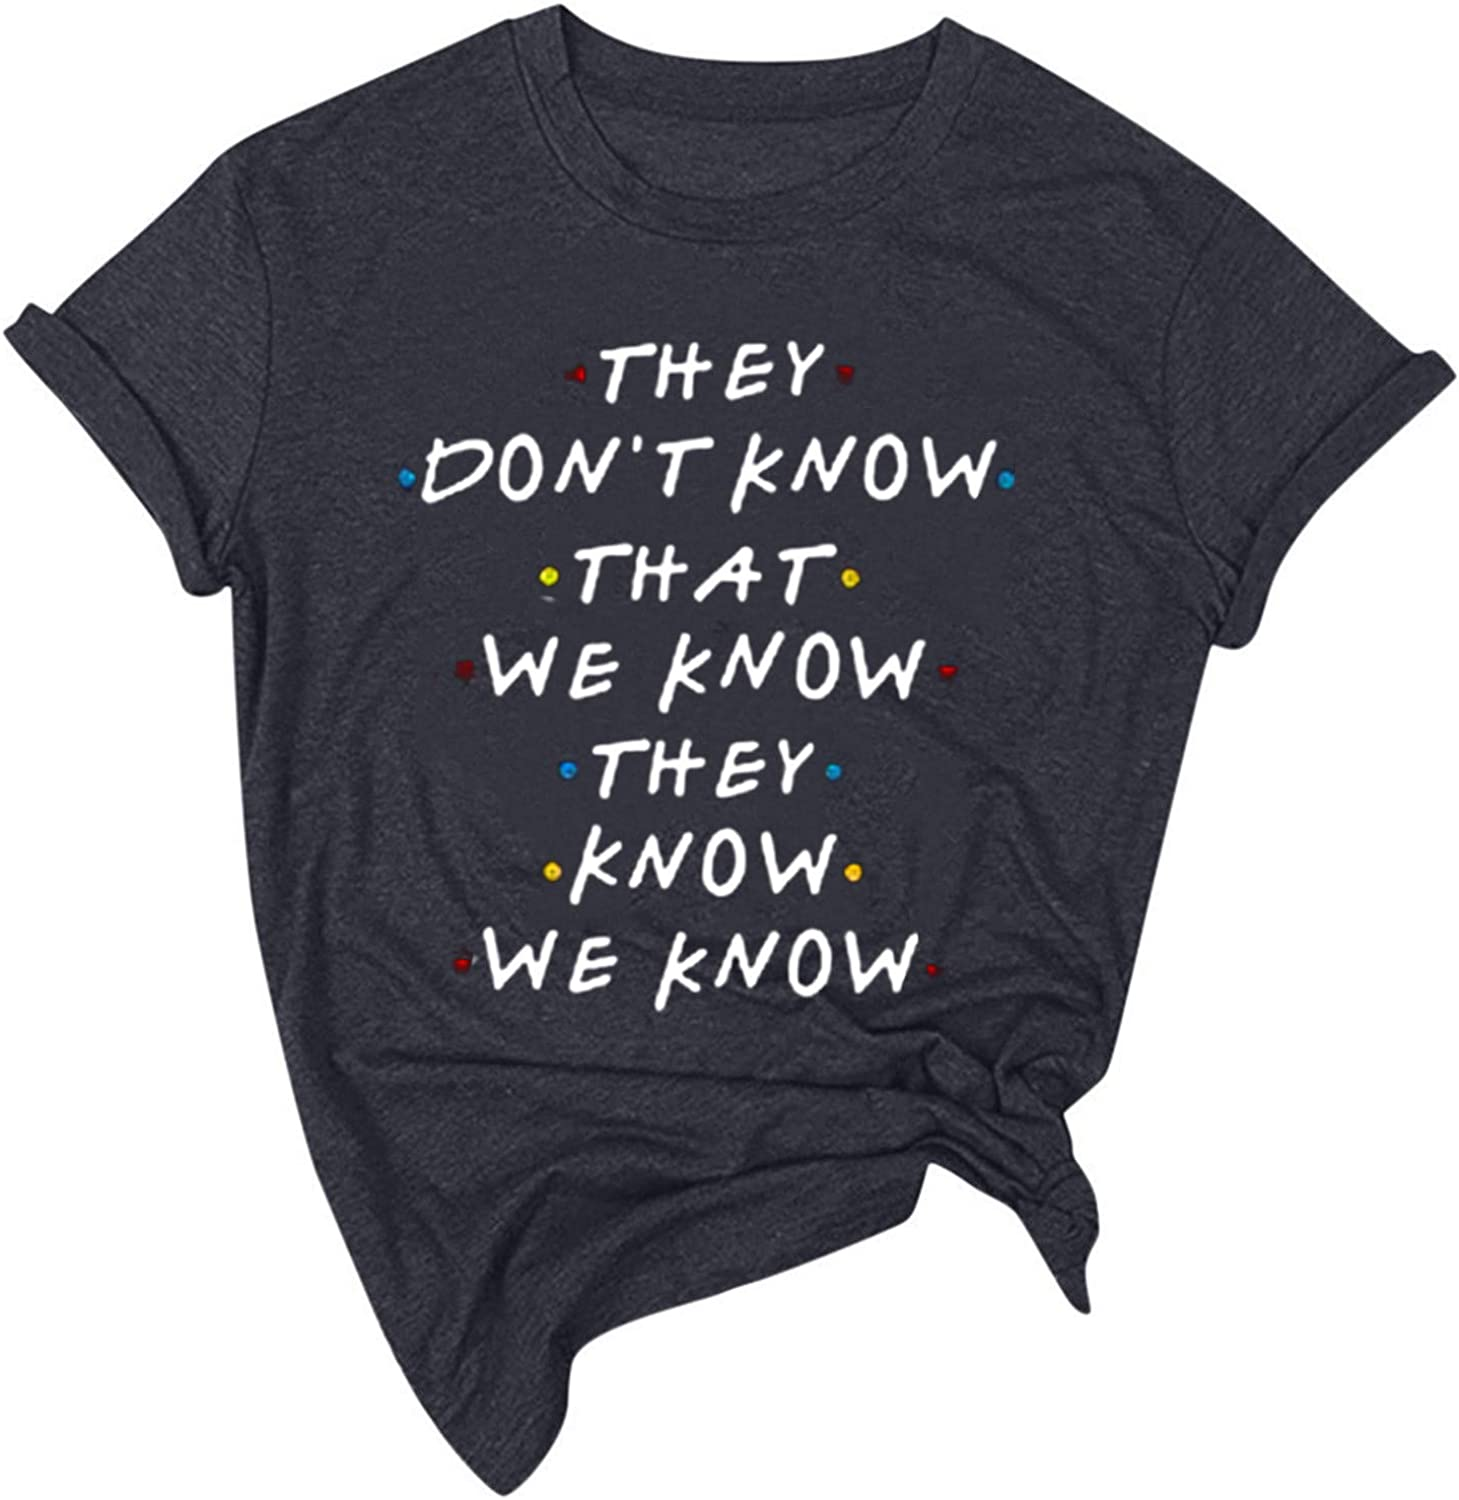 They Don't Know That We Know They Know T Shirt Women Short Sleeve Casual Letter Tops Friends Shirt Tees with Saying